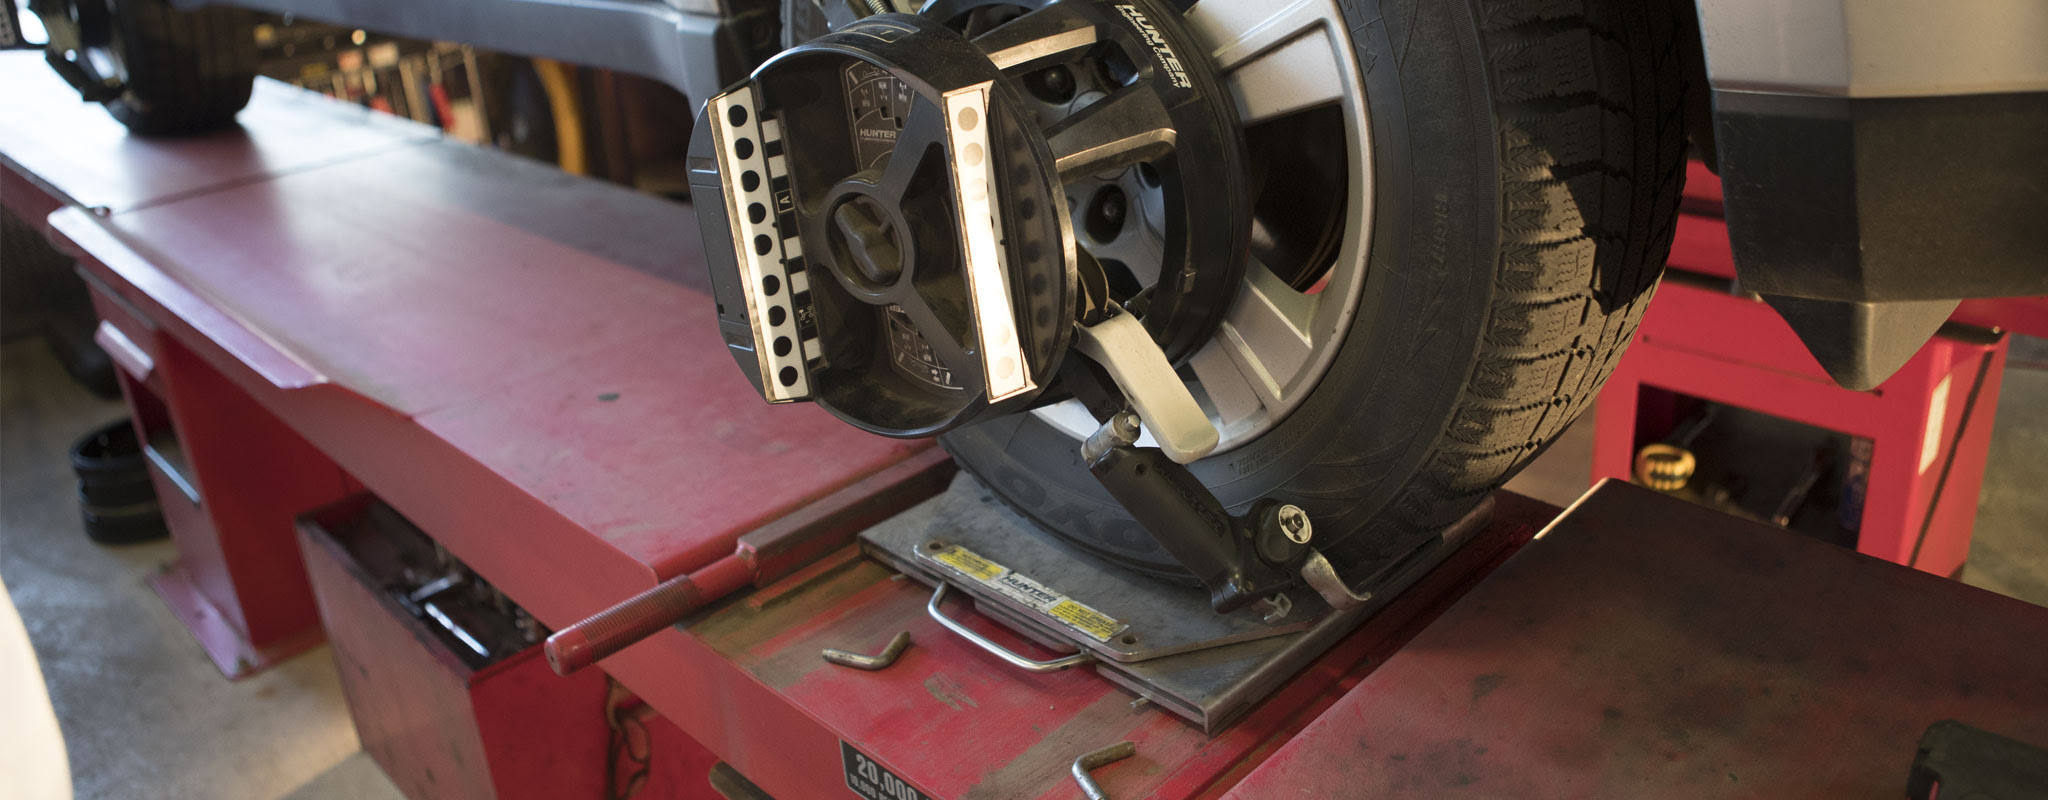 Wheel Alignment Faq Frequently Asked Questions Les Schwab